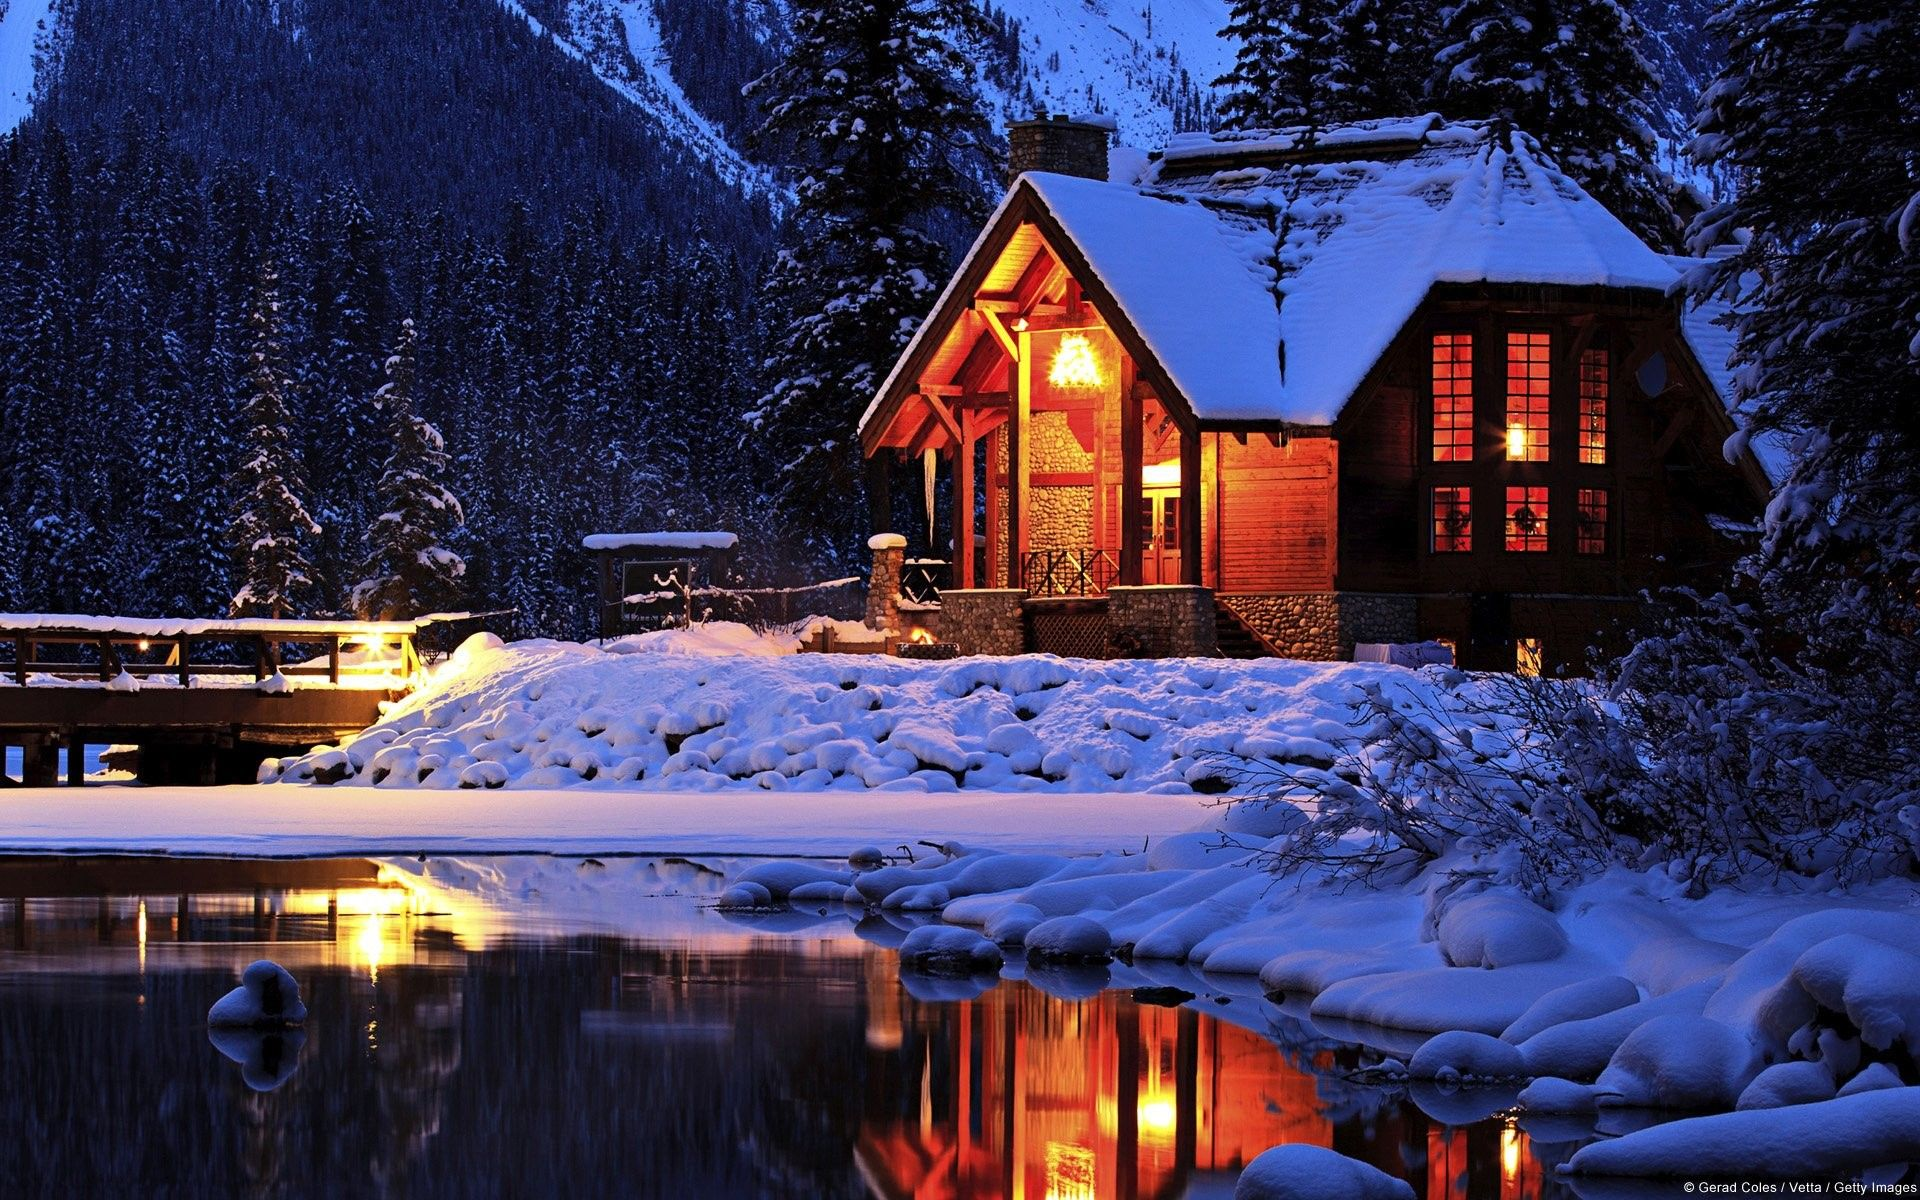 Snow Cabin Wallpapers Top Free Snow Cabin Backgrounds Wallpaperaccess